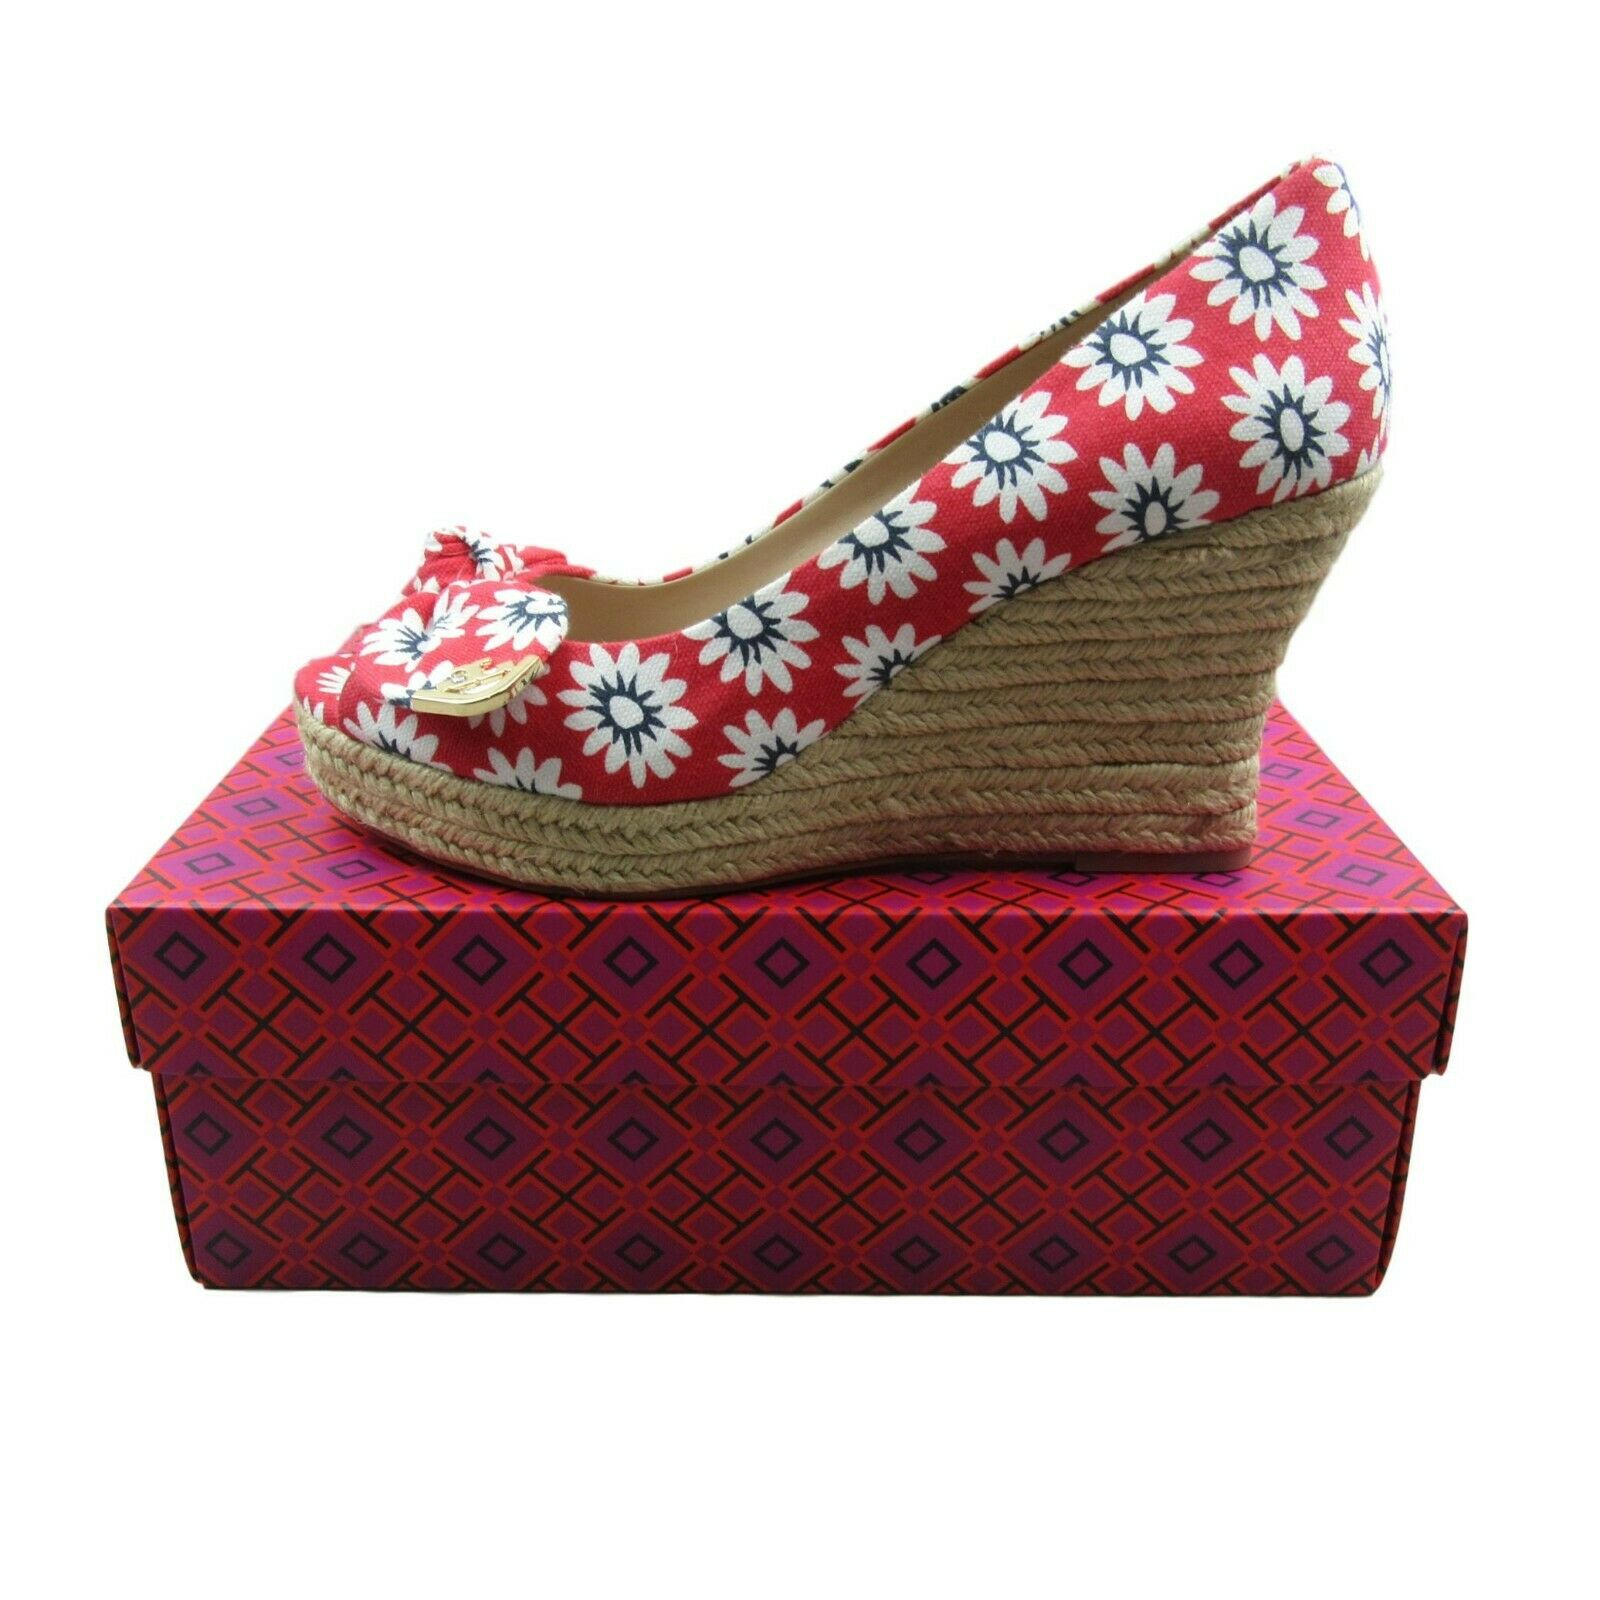 """4d40cb4e7 Tory Burch """"Dory"""" Peep Toe Wedge Espadrille Size 10 Floral Nantucket Red  Navy"""